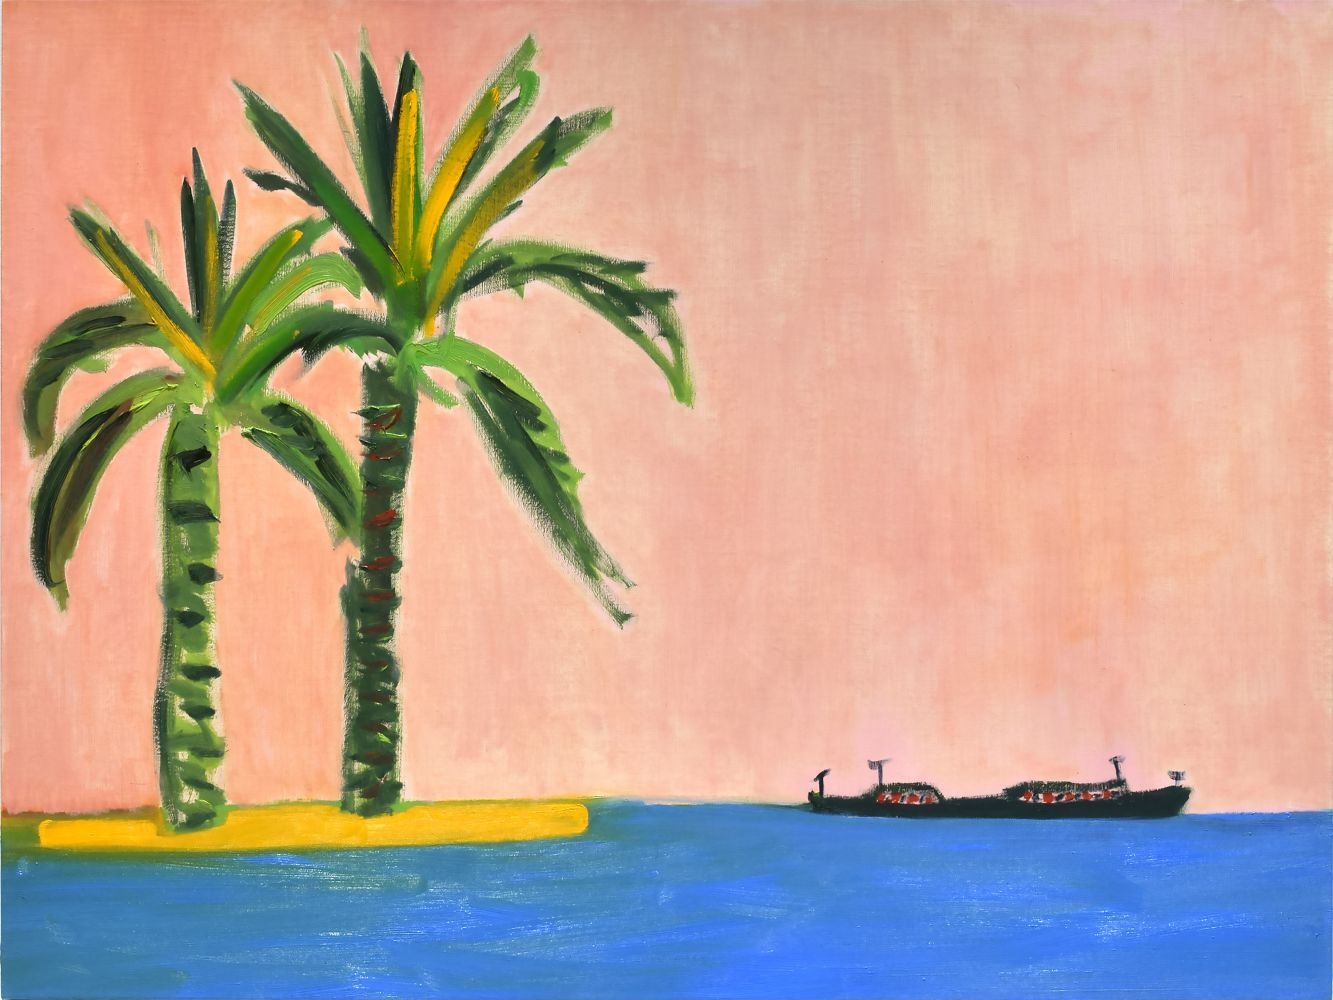 Image of Palm Trees and Boat